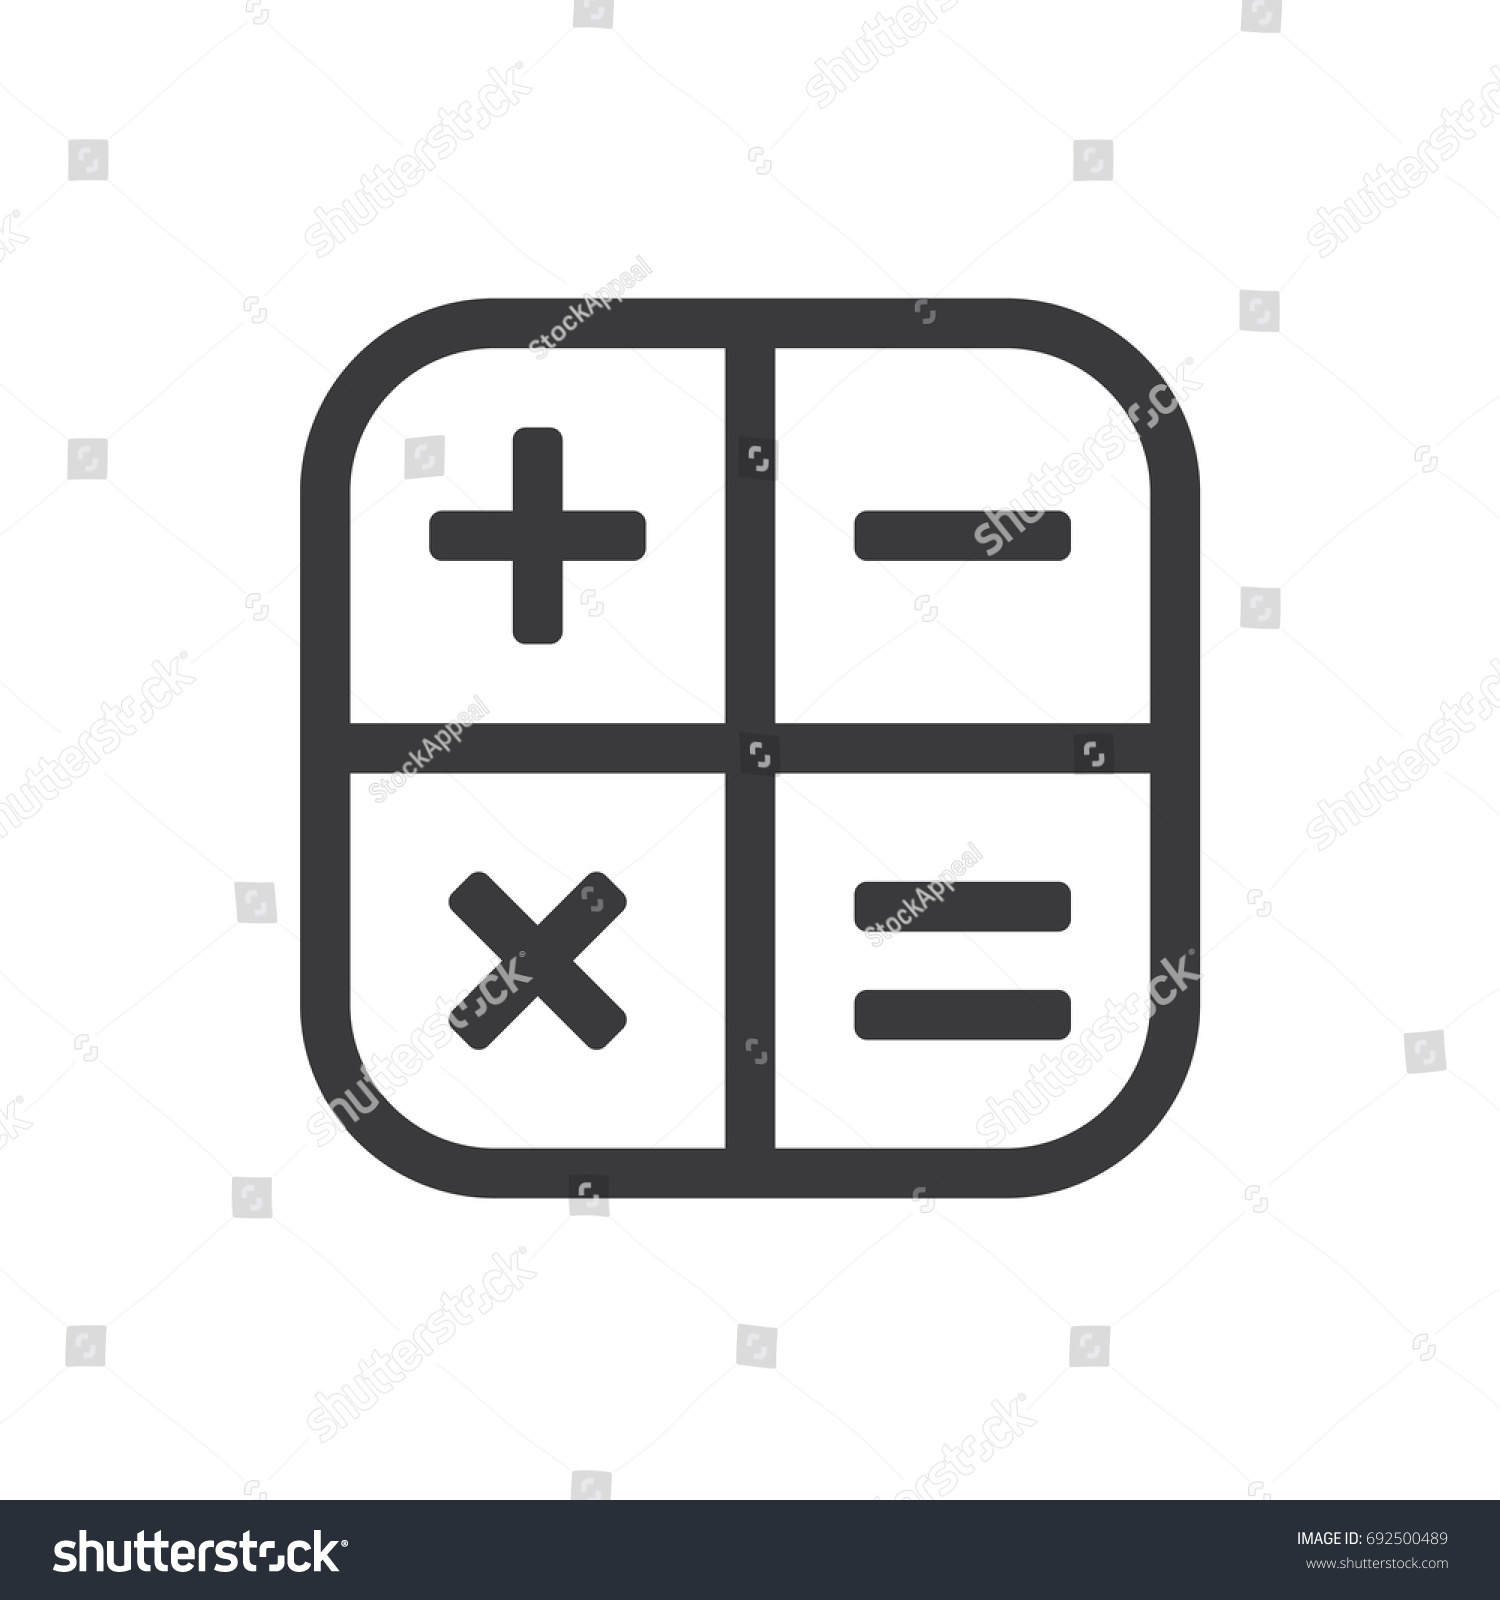 Square math calculator app icon with plus, minus, times and equal.